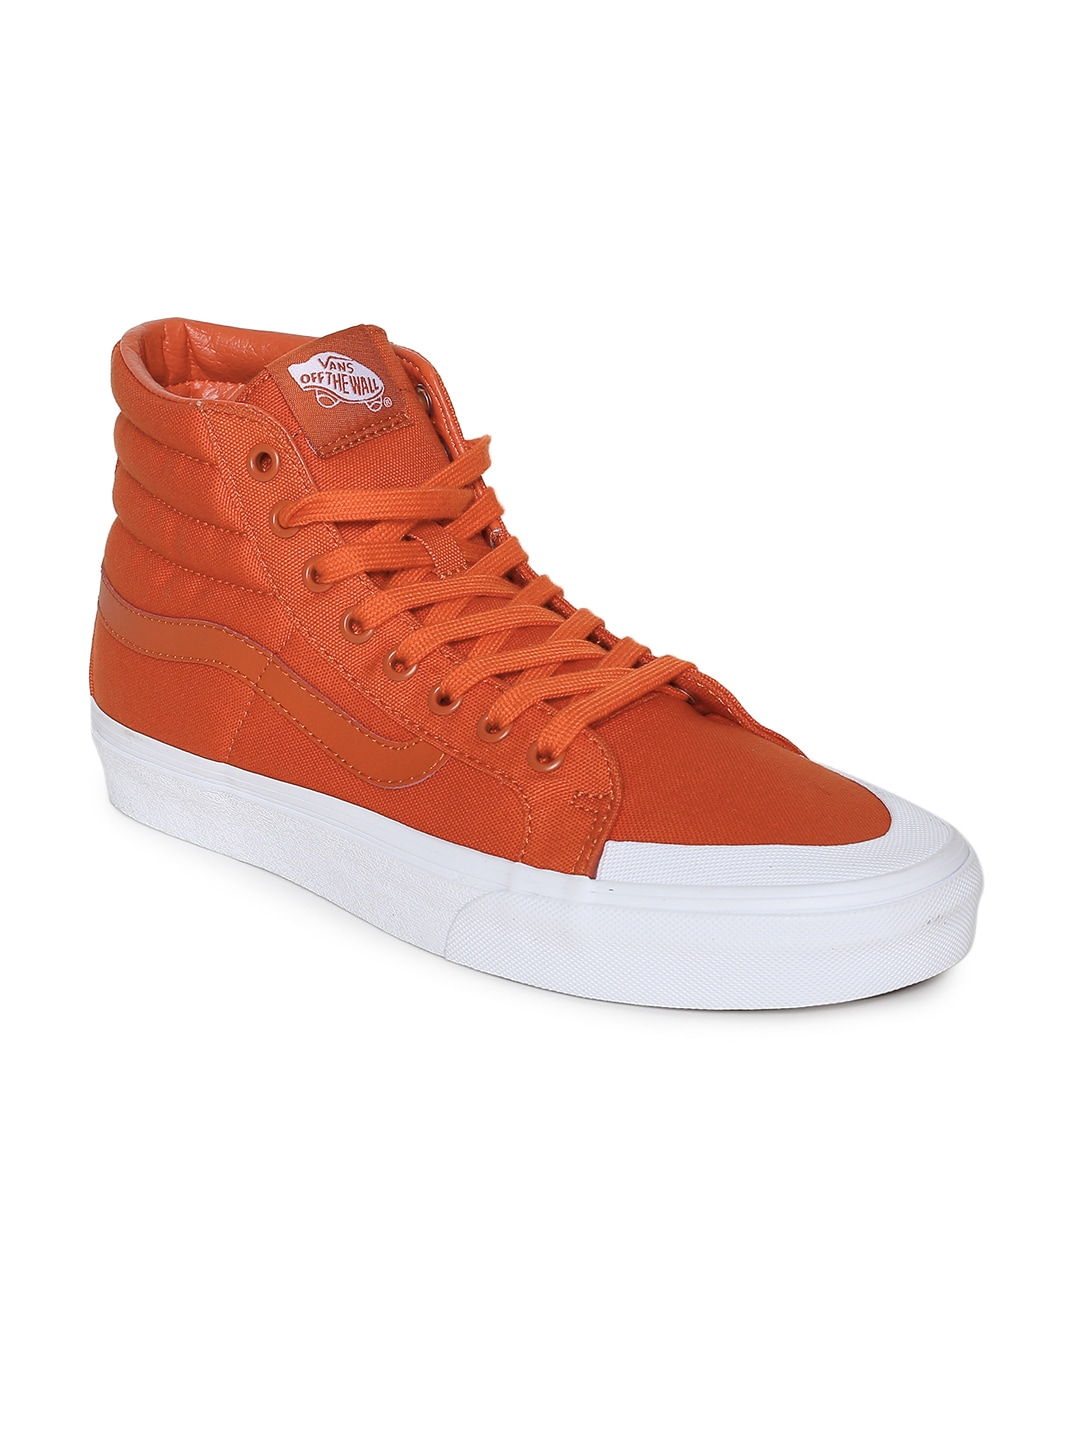 ee0293d6c2e1 Vans - Buy Vans Footwear, Apparel   Accessories Online   Myntra